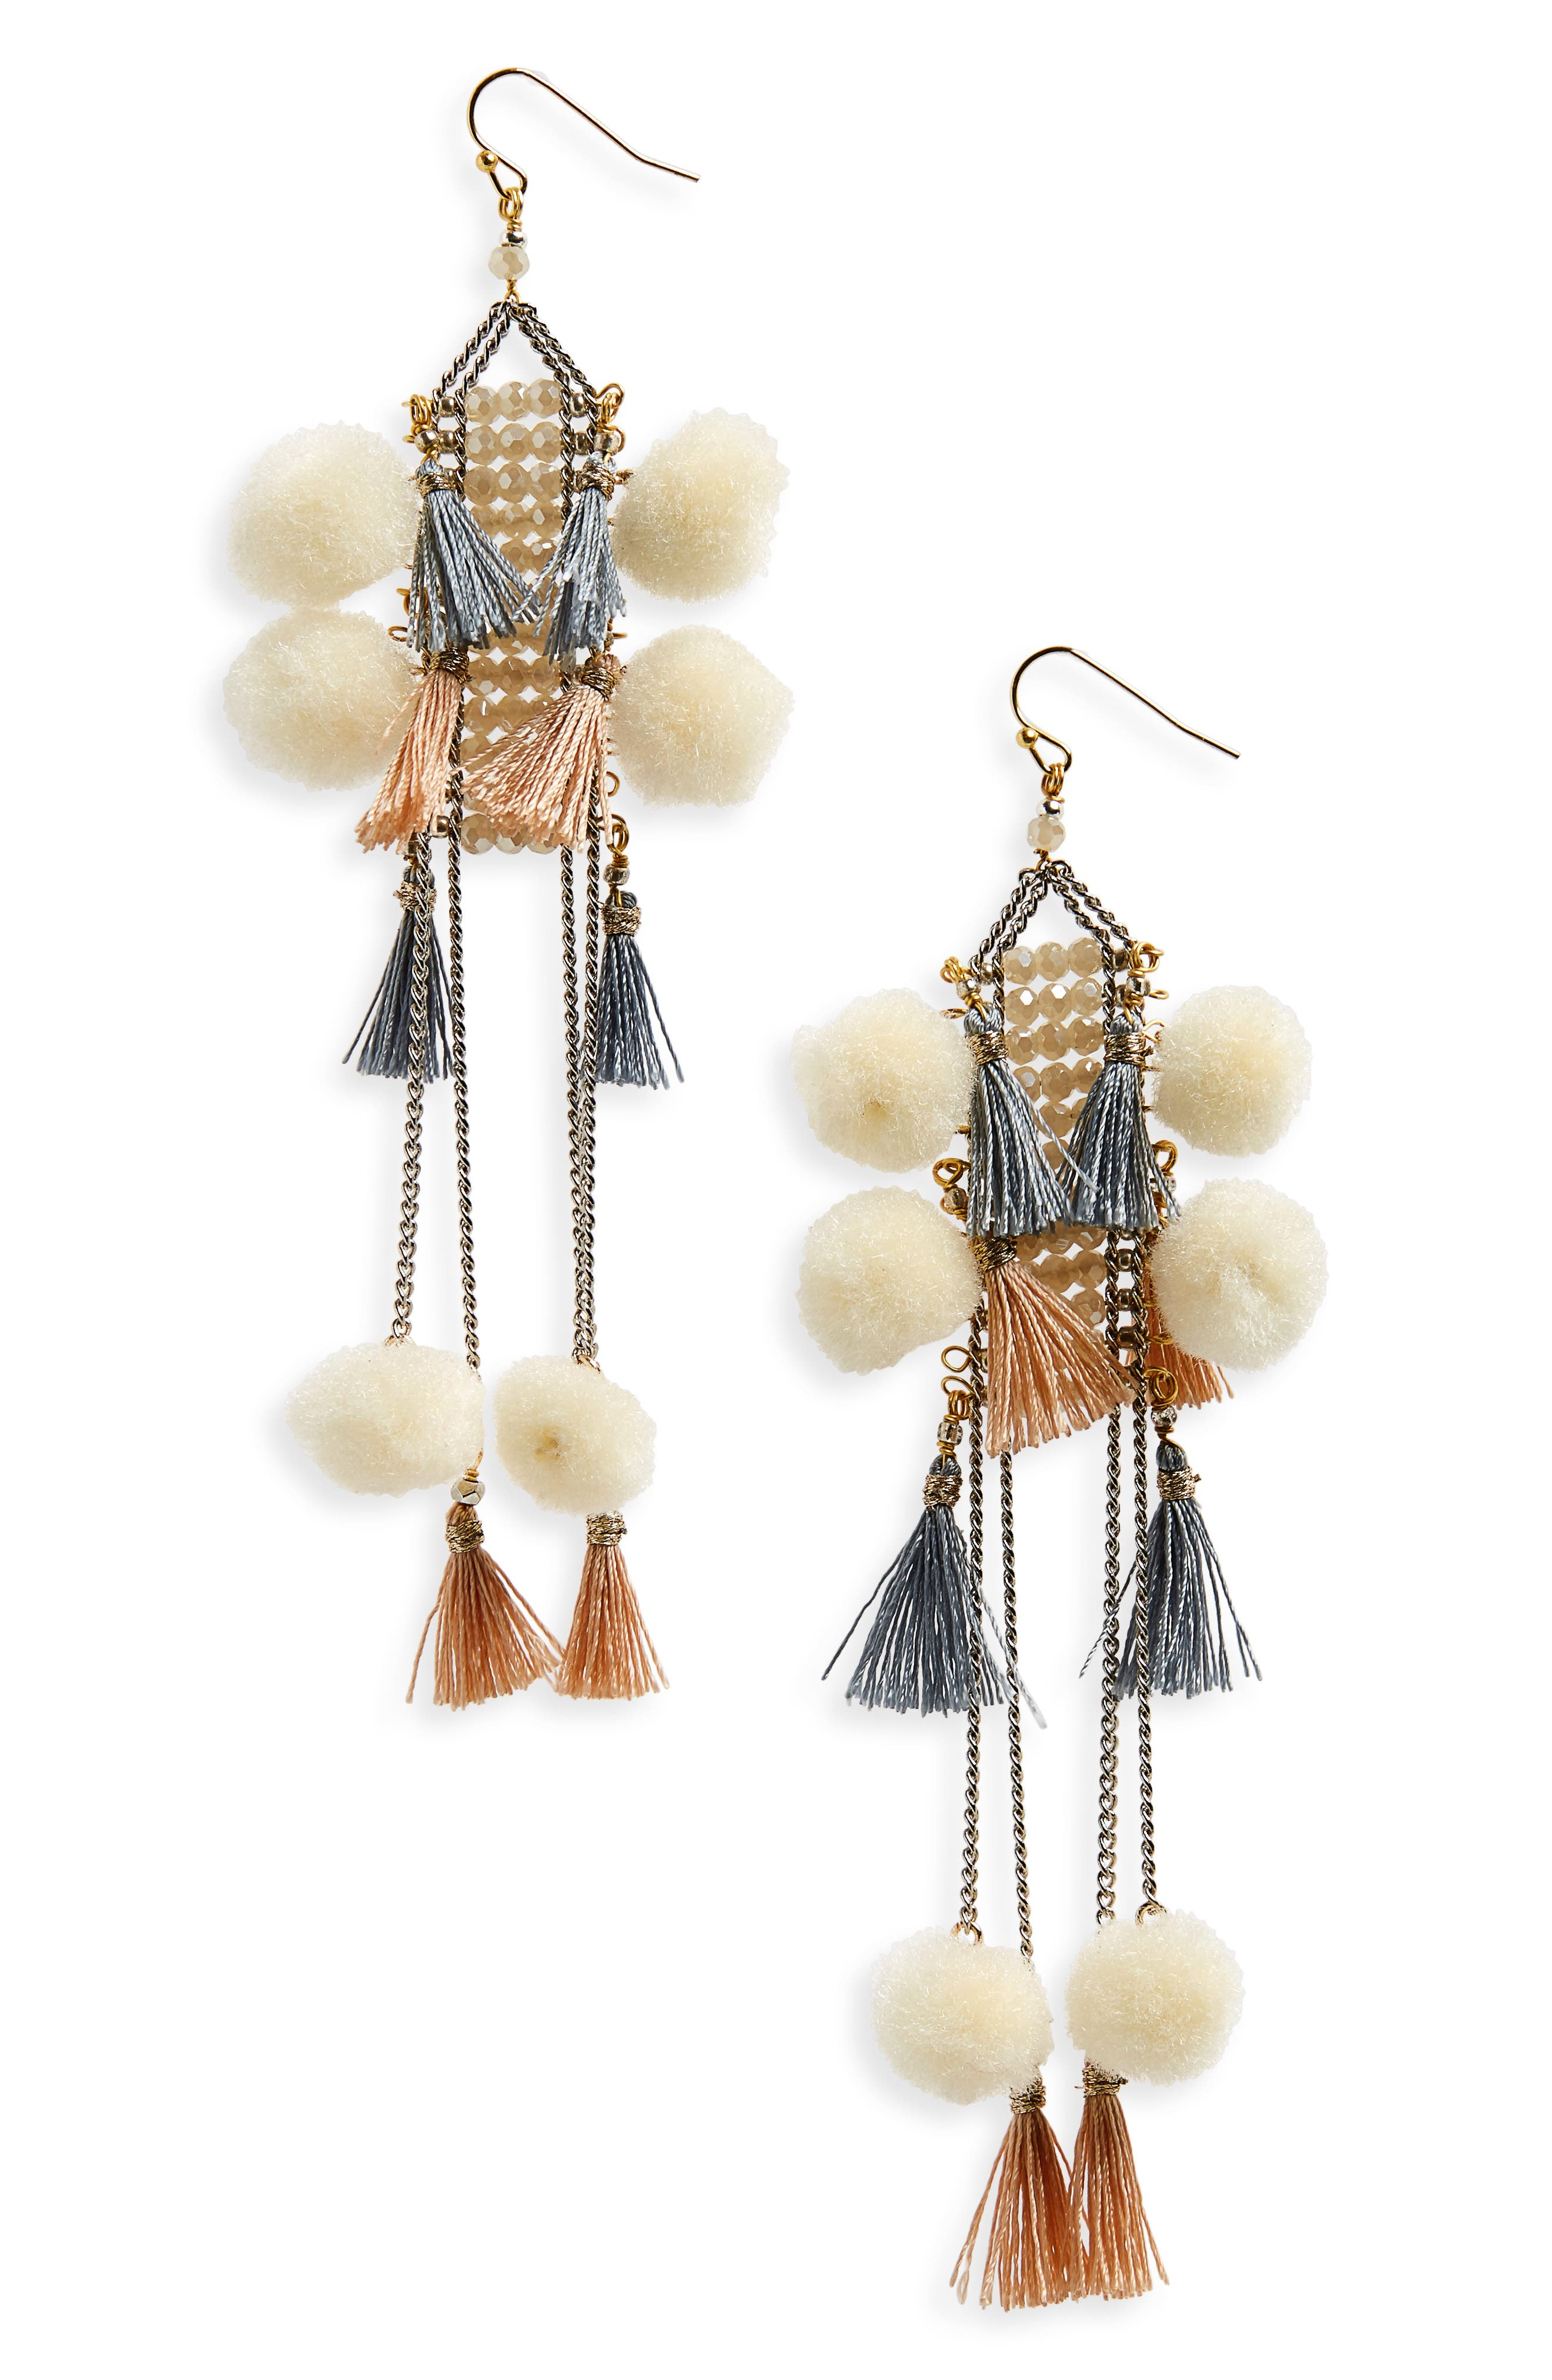 Nakamol Design Pom & Tassel Crystal Ladder Earrings